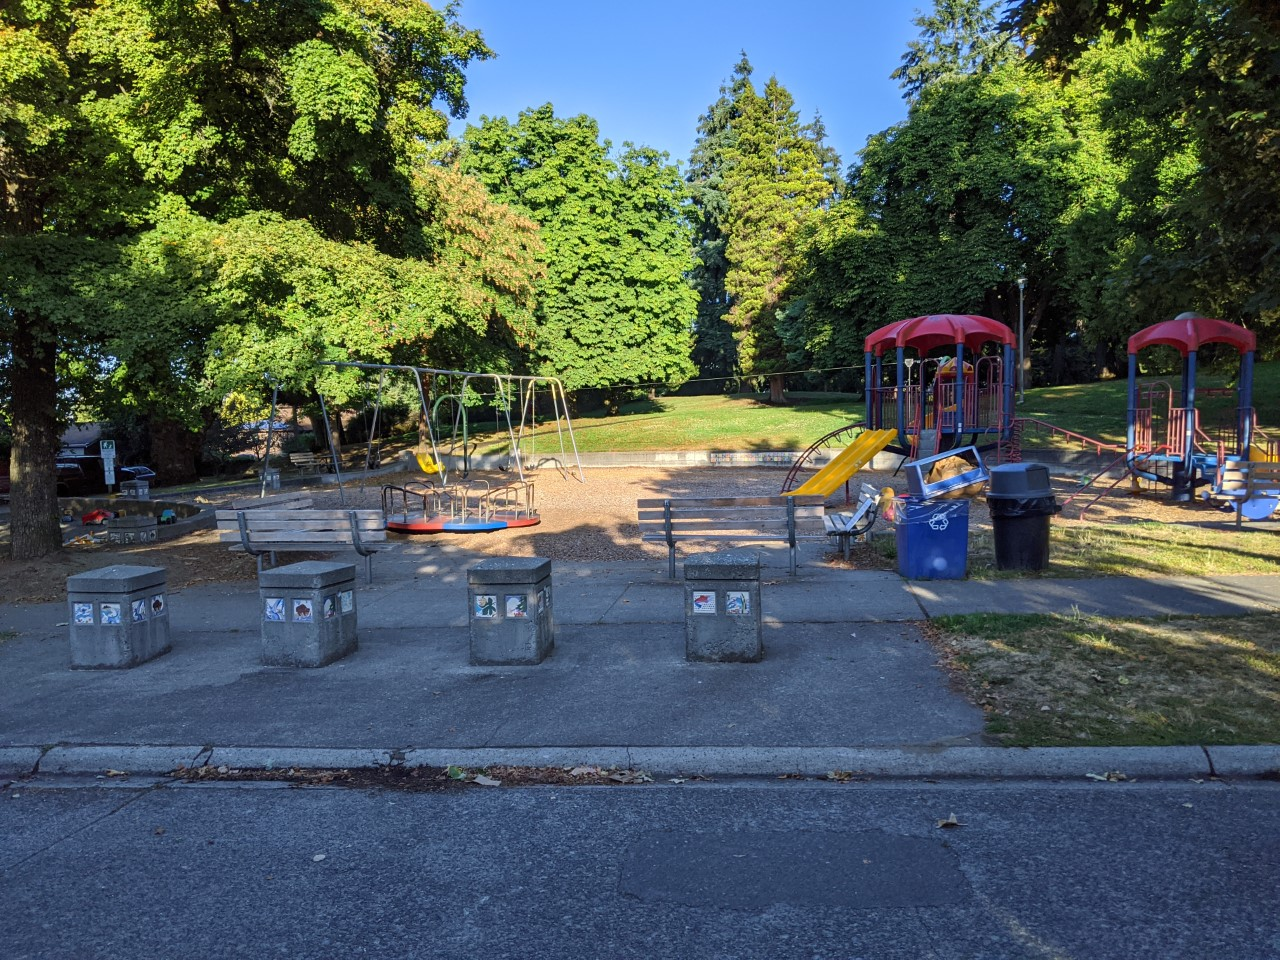 Salmon Bay Park play area - existing site